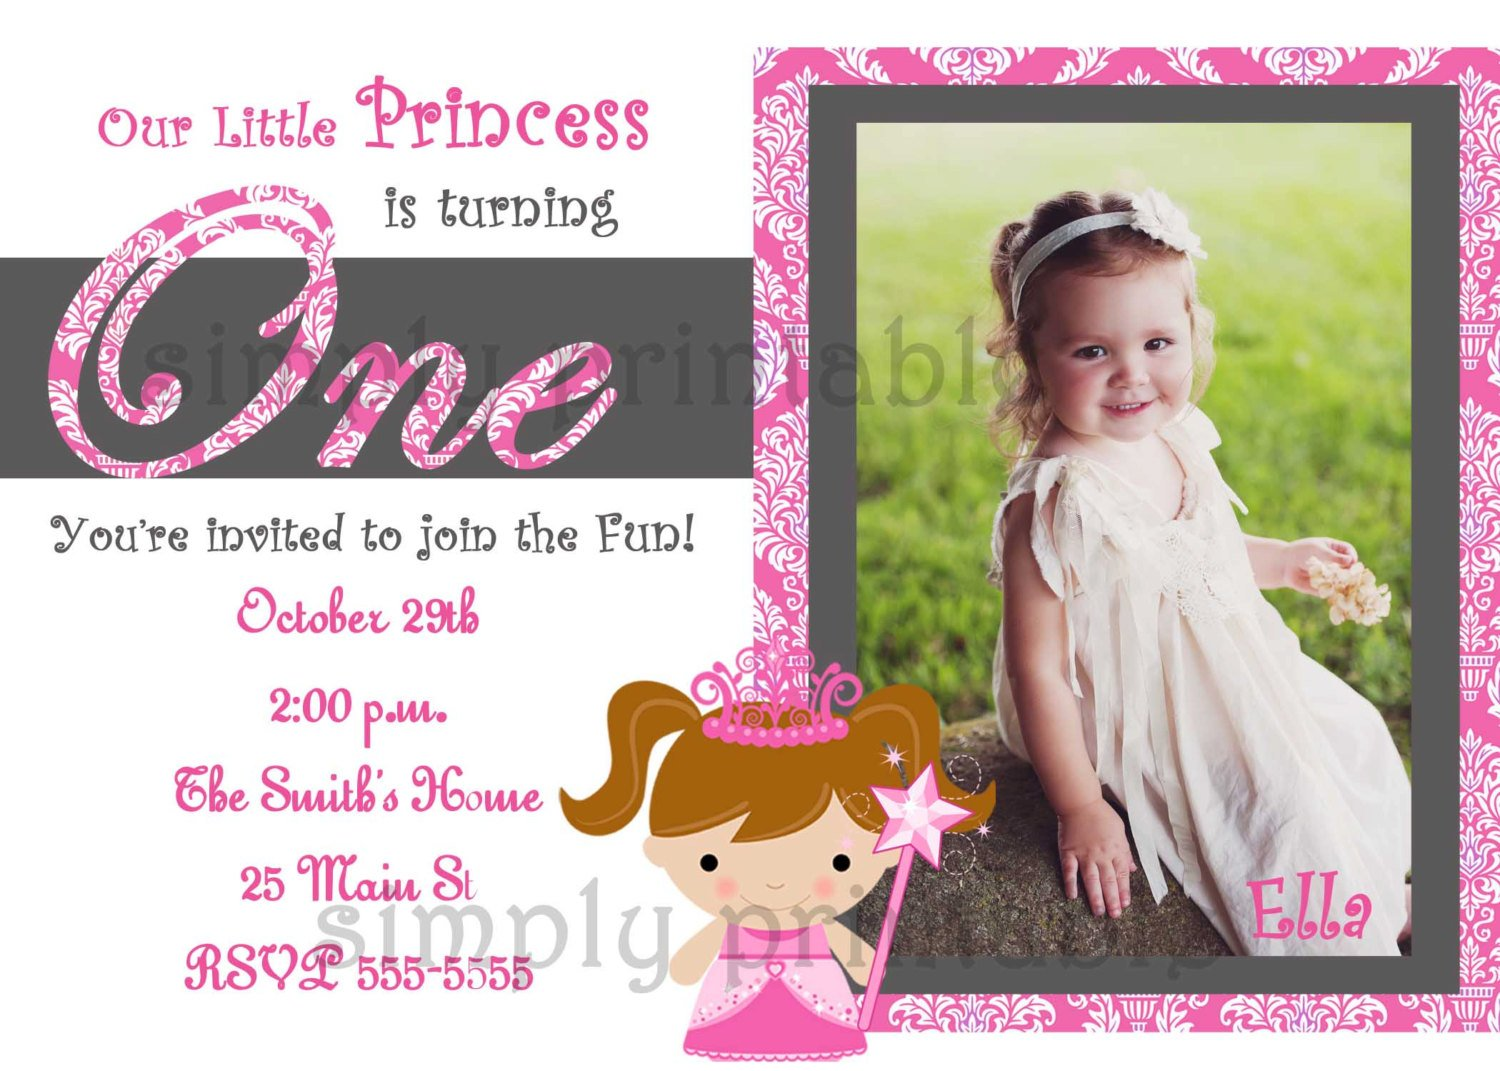 1st Birthday Party Invitations Template for Girl | FREE Invitation ...